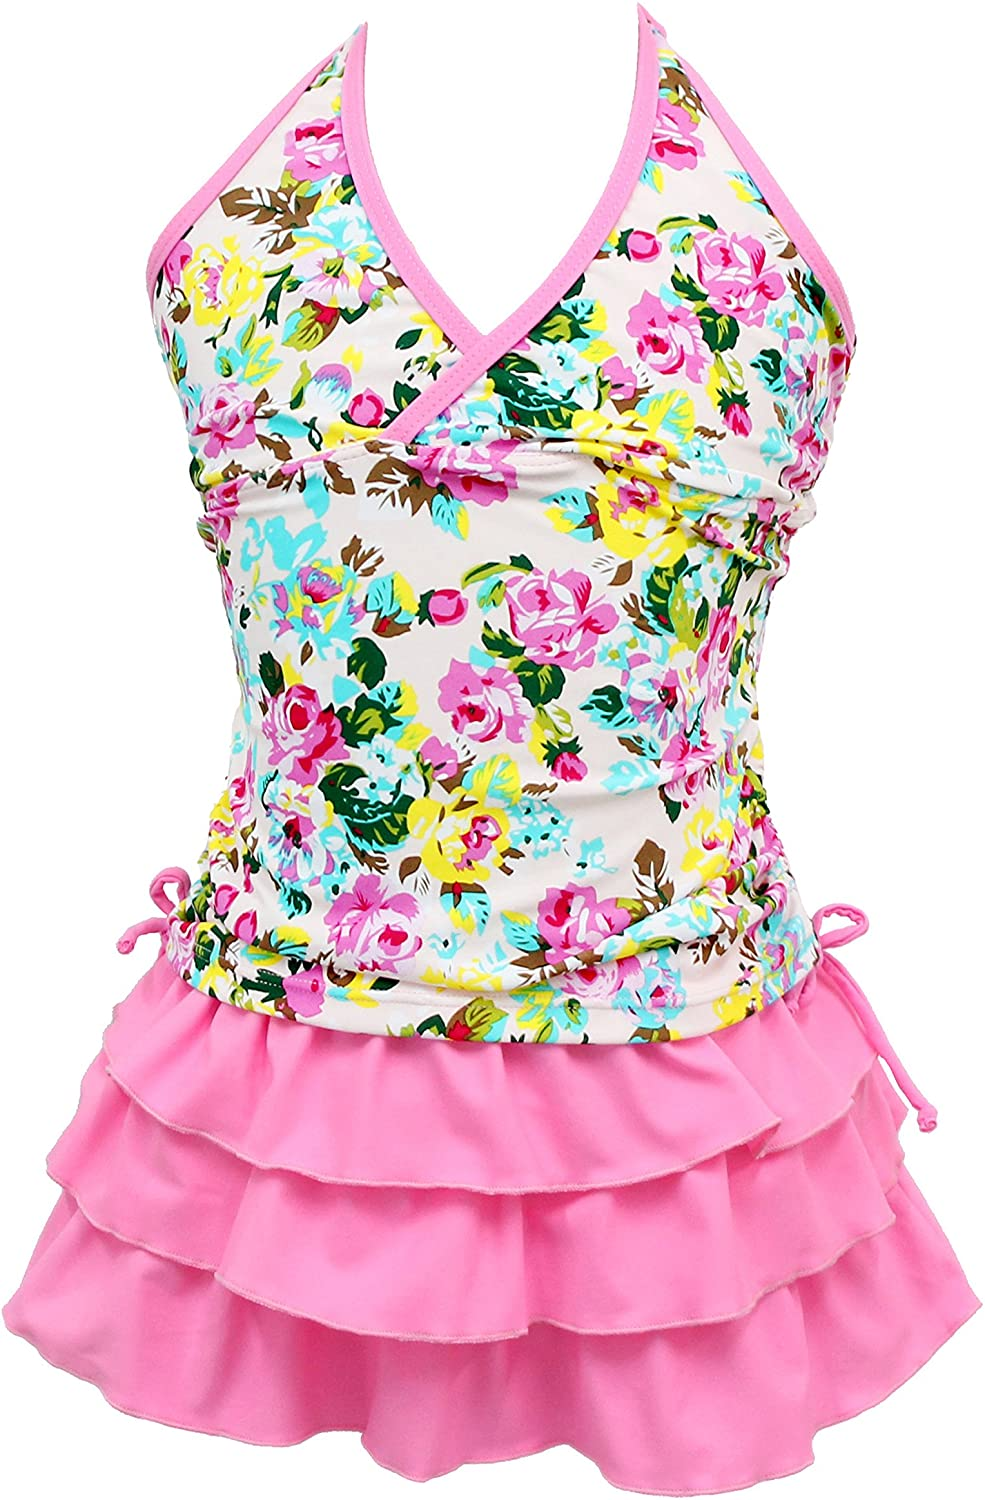 Qyqkfly Girls' 2 Piece 4Y-15Y Florence Adjustable Tankini Swimsuit (FBA) (Small(8) Pink)